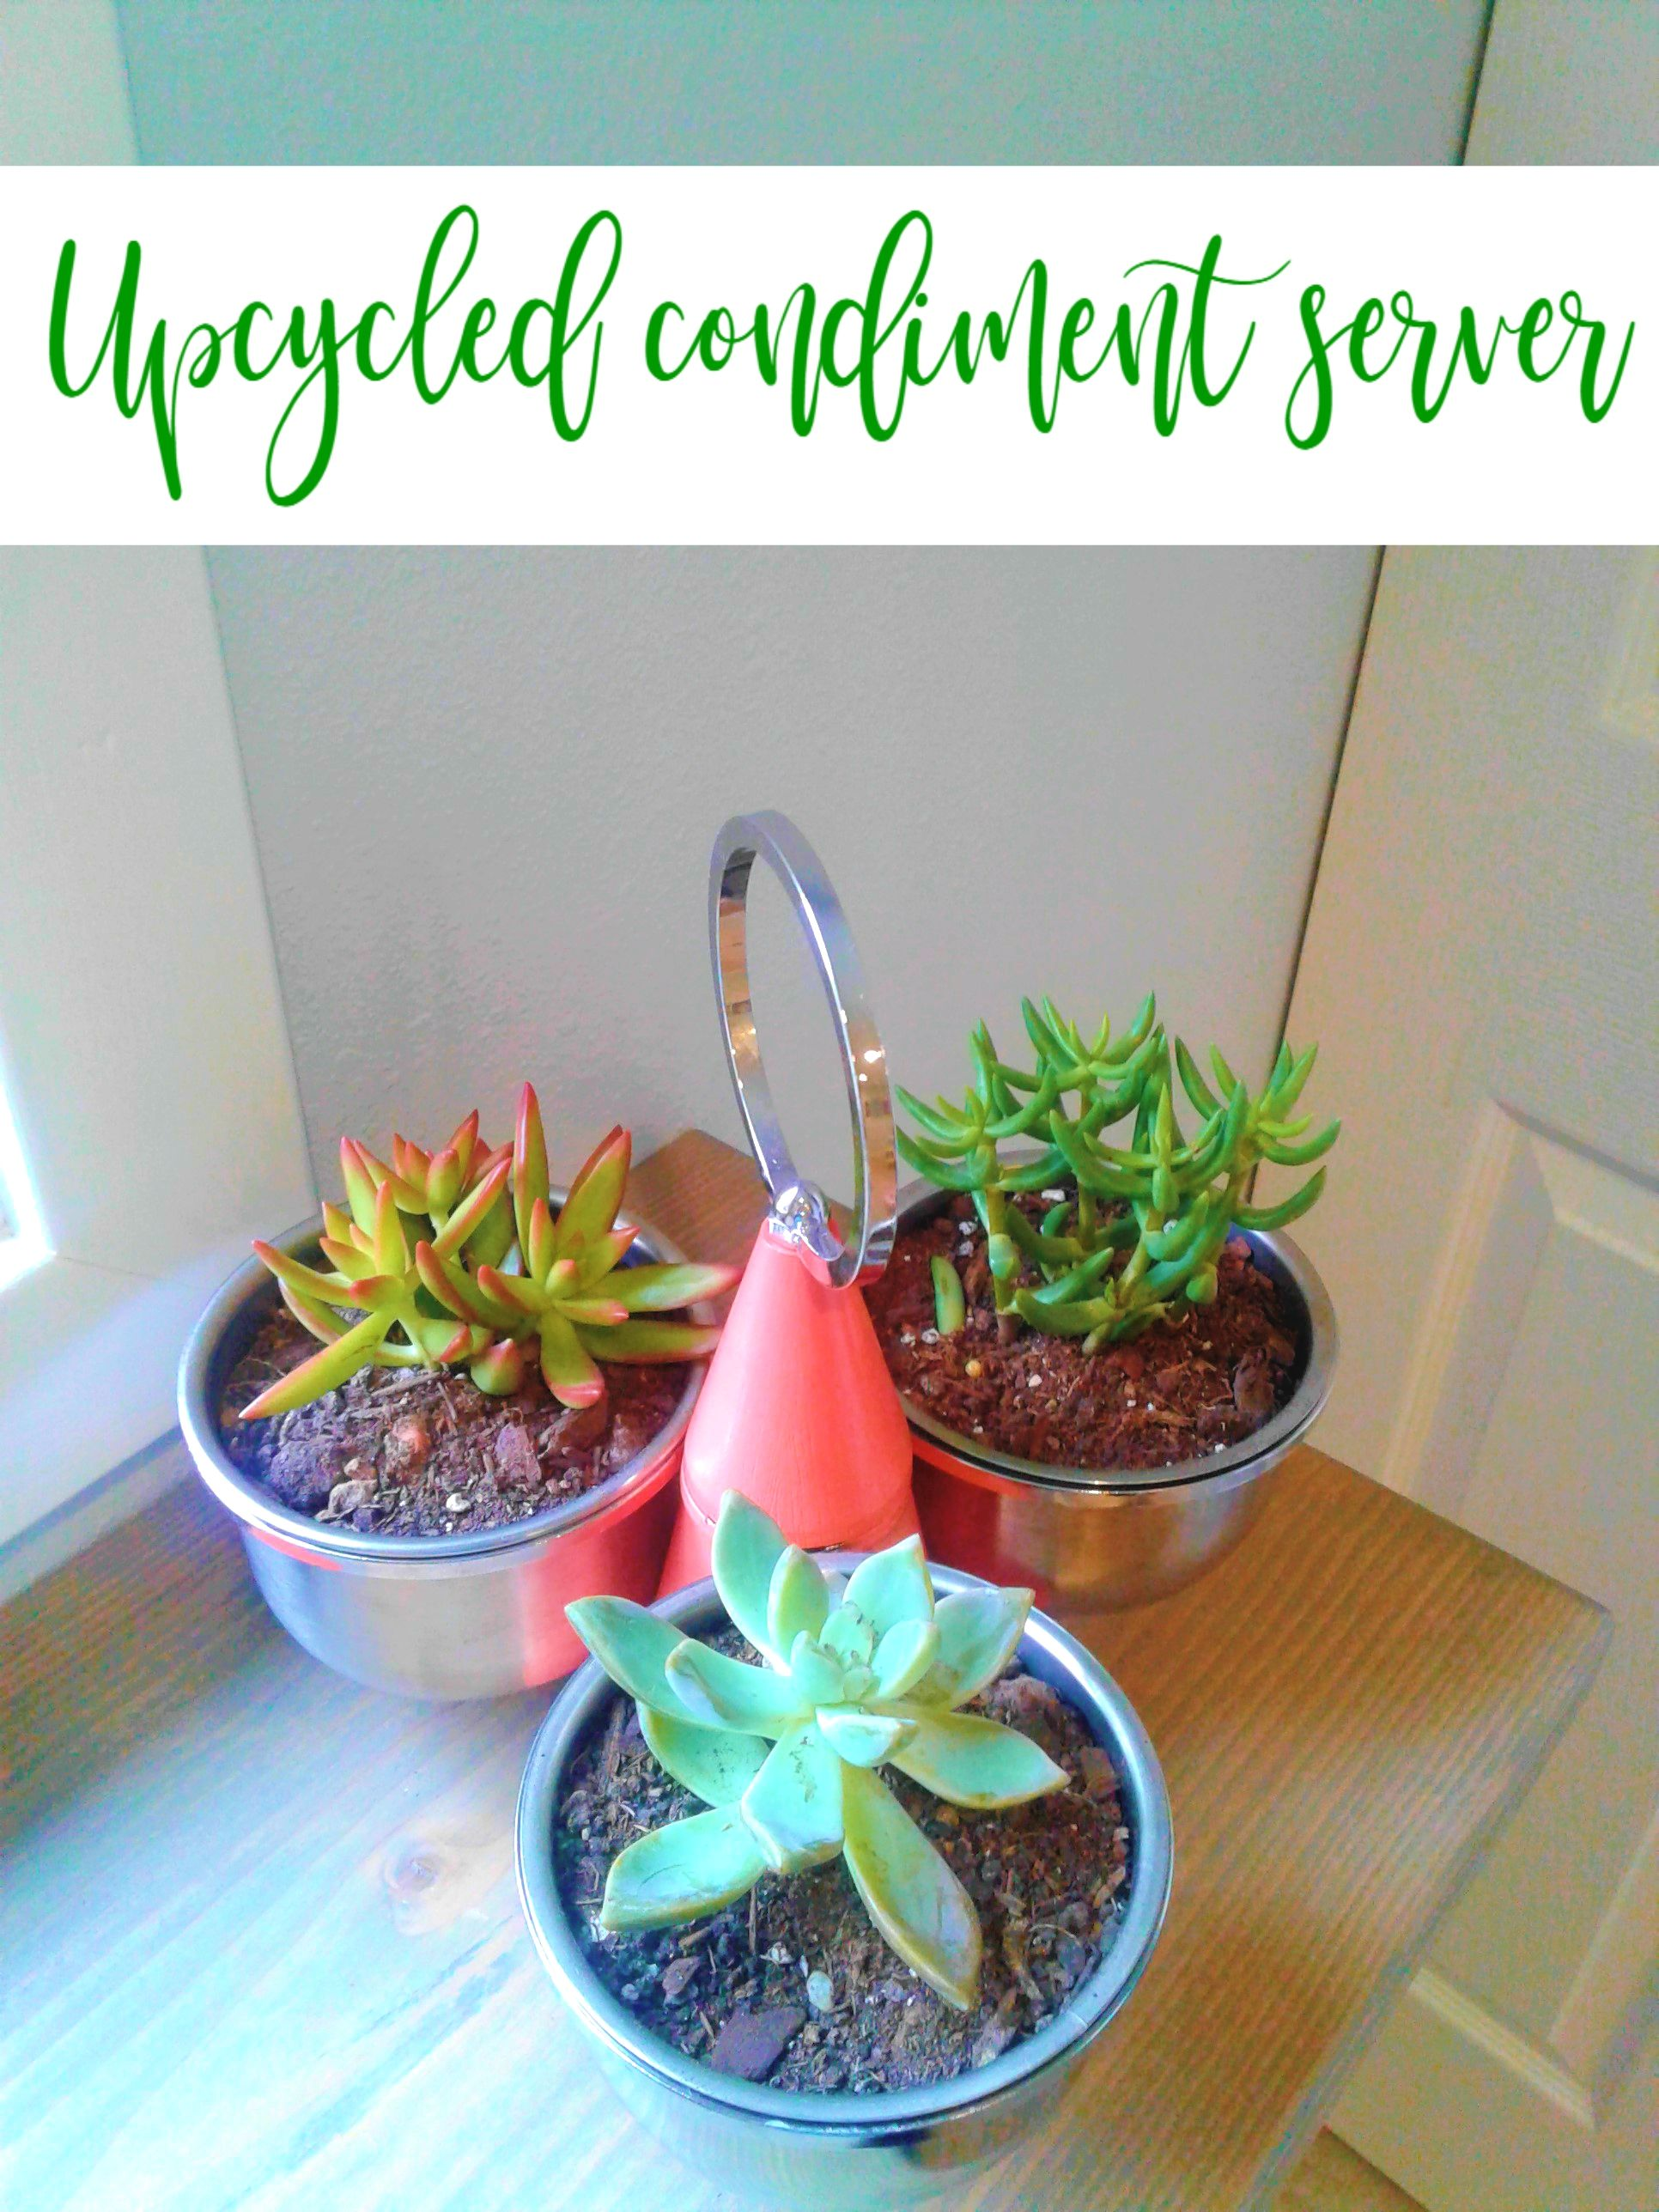 Upcycle A Condiment Server Into A Mini Garden This Would